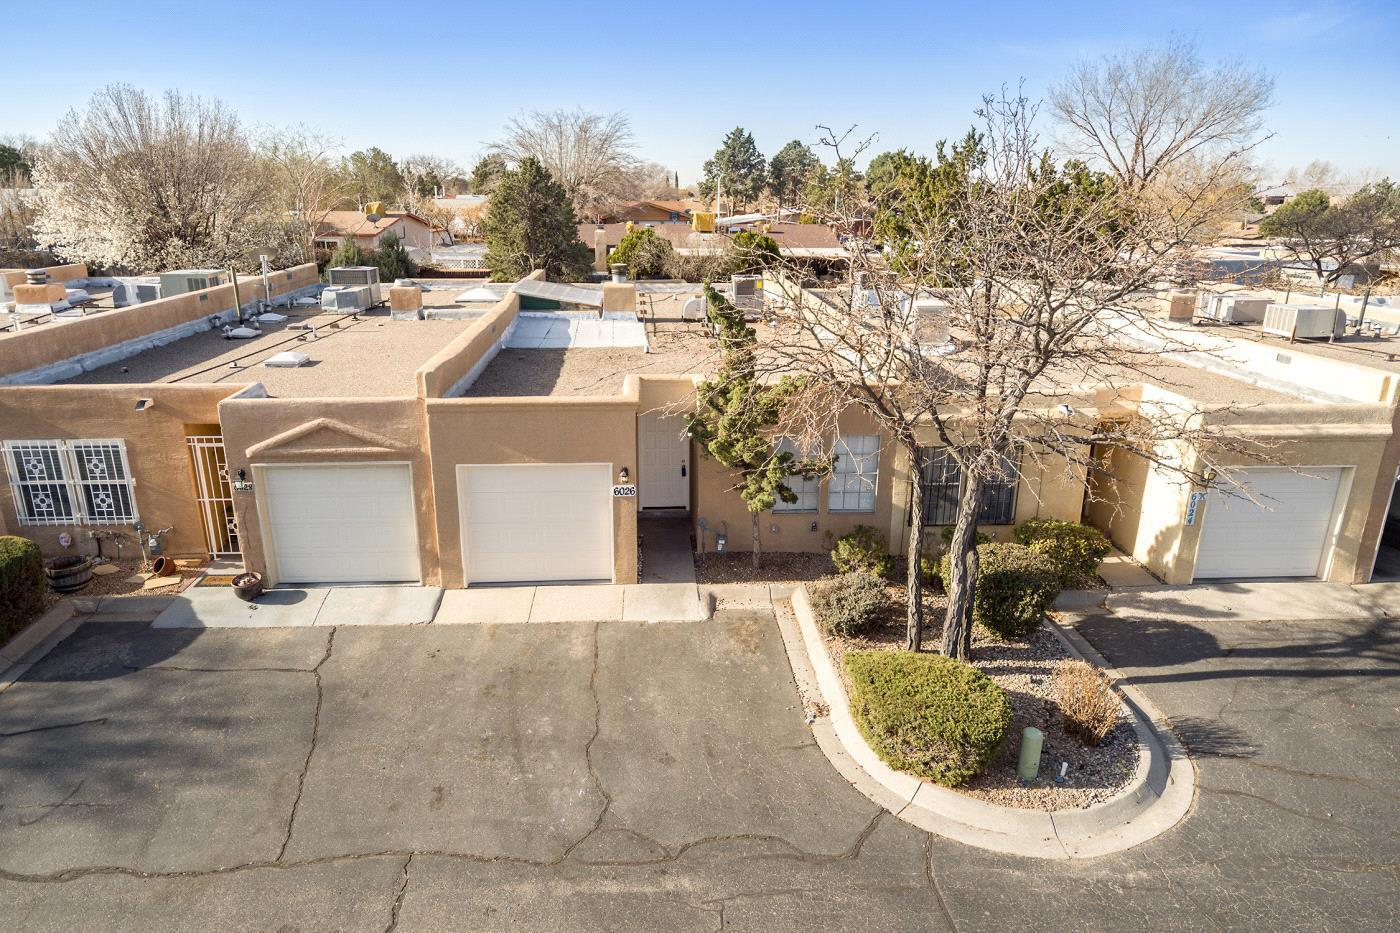 Charming centrally located home in NE ABQ. If you're looking for convenience in the city, look no further as this 2 bedroom and 2 bathroom home has much to offer. Enjoy your new Modern kitchen featuring new Granite and SS appliances.  The home is ready to be enjoyed by its new homeowner! Don't delay, view today!